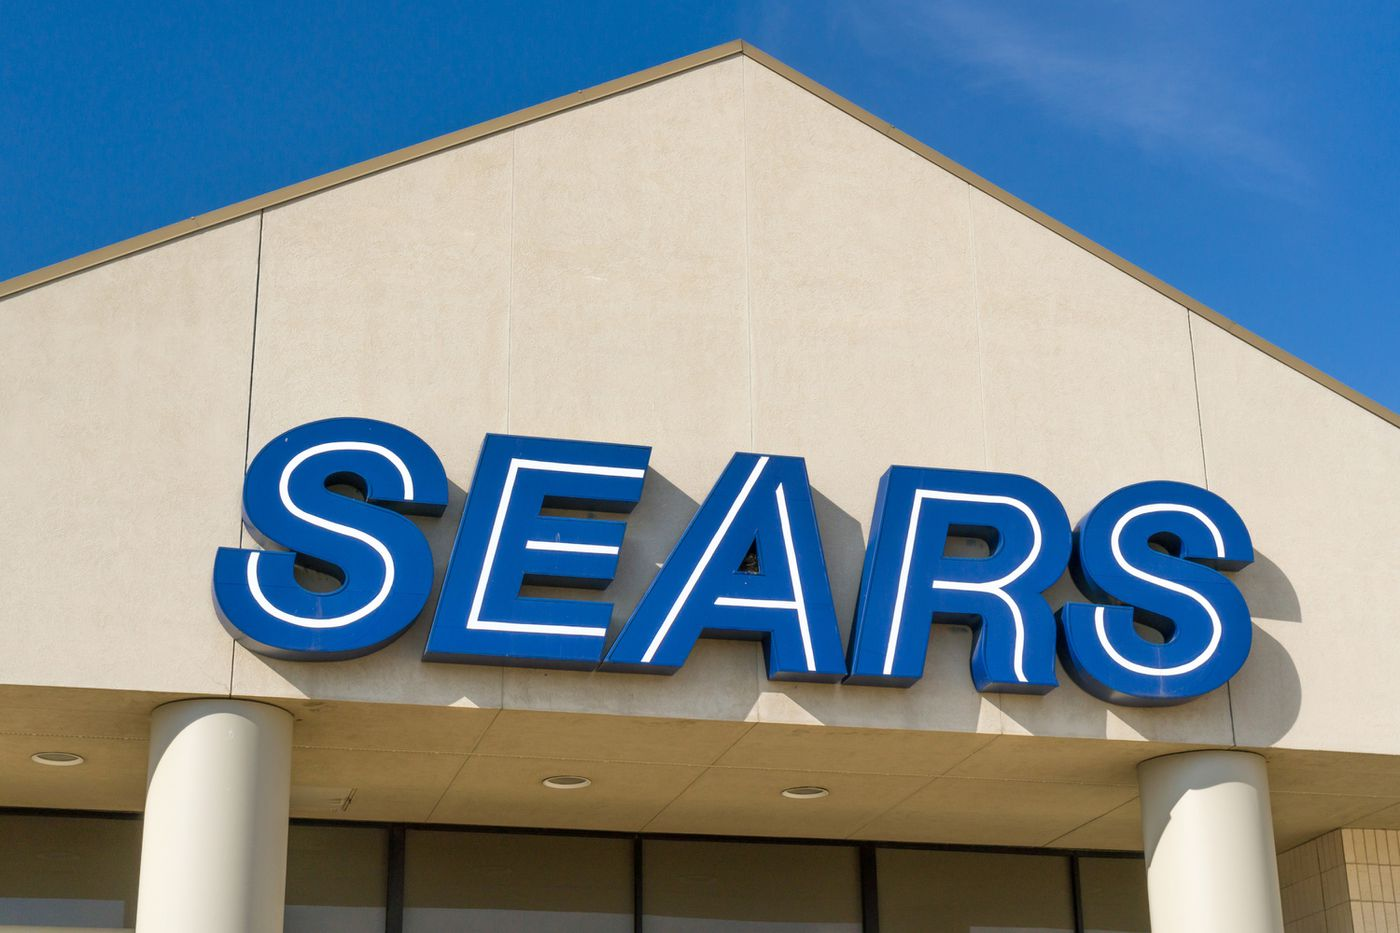 Sears Is Shuttering Dozens Of Stores Heres A List The Closings